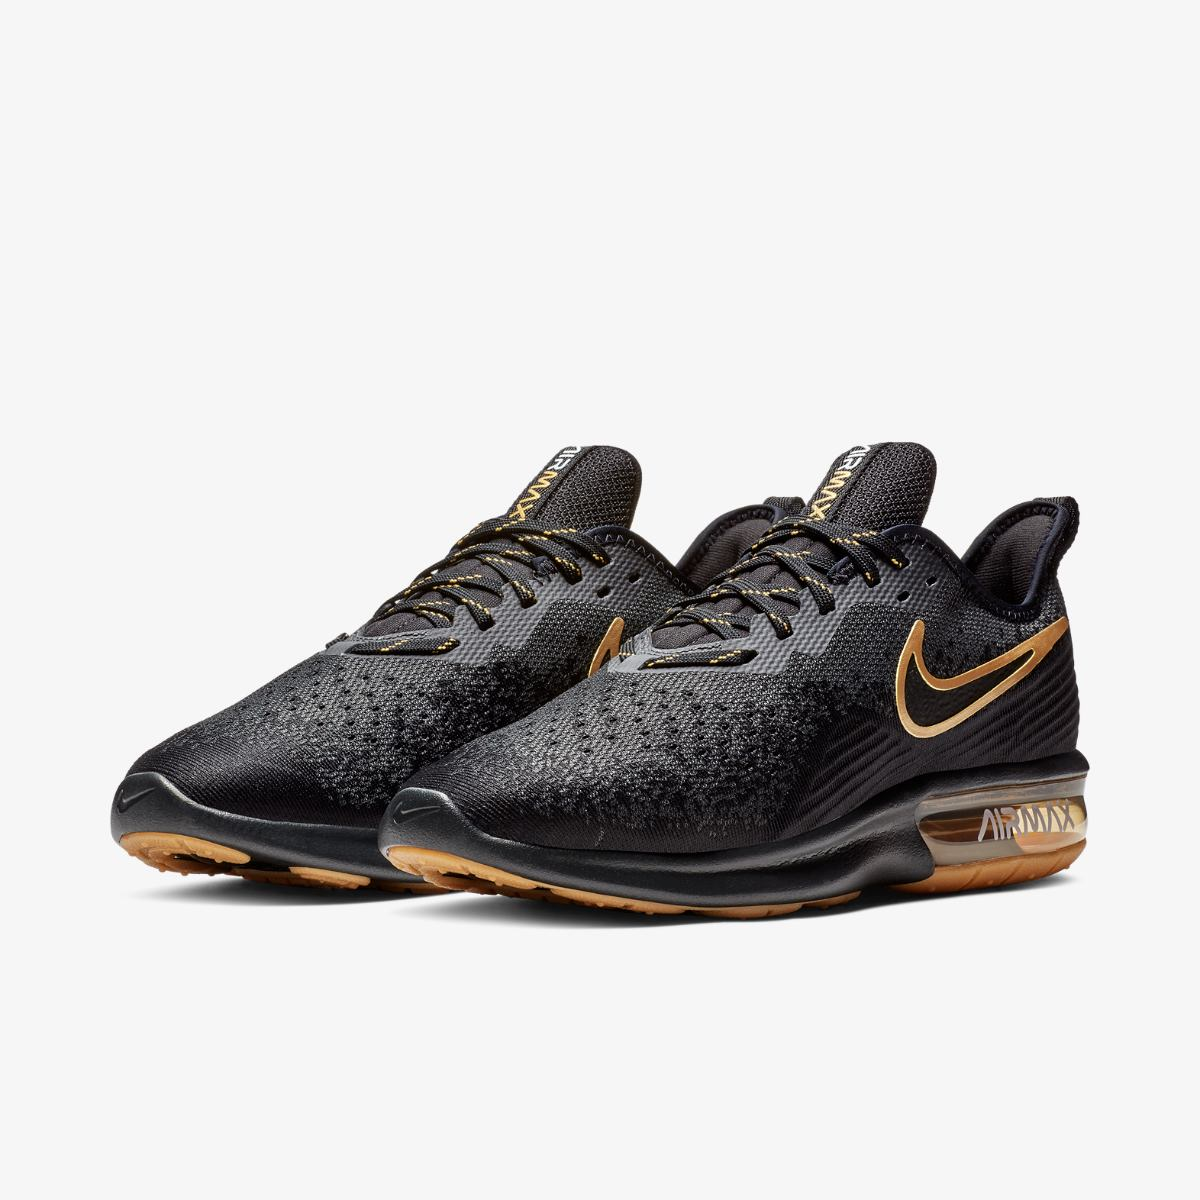 4 18 Nike Air Max Sequent 4 [AO4485 005] Men Running Shoes